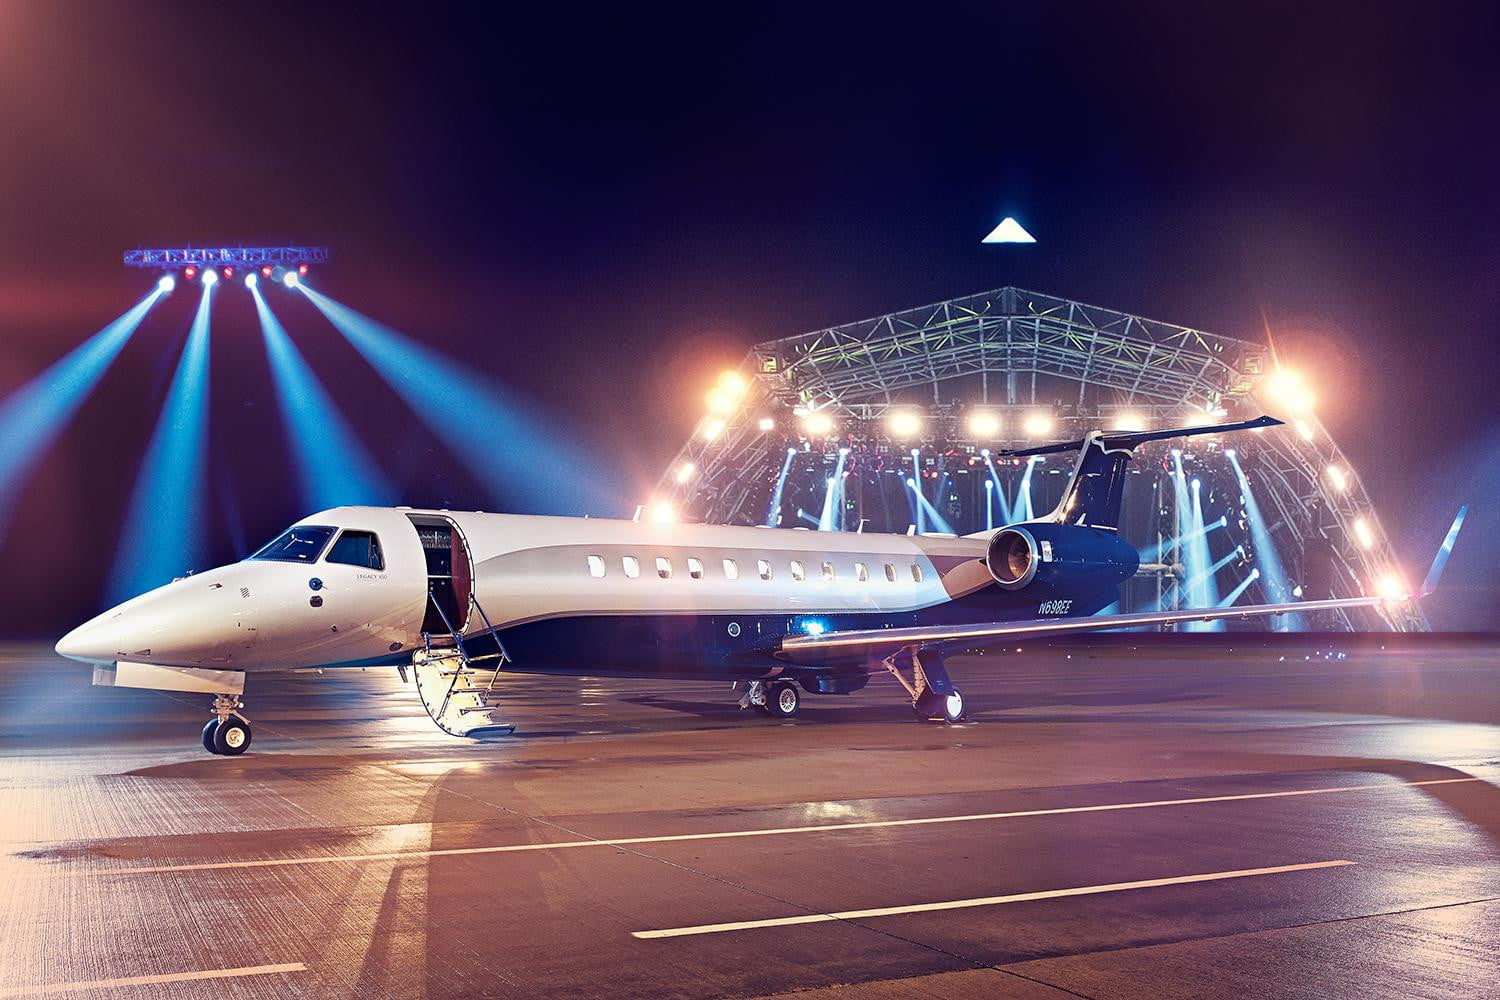 1000 images about private jets on pinterest private for Super luxury hotels in dubai